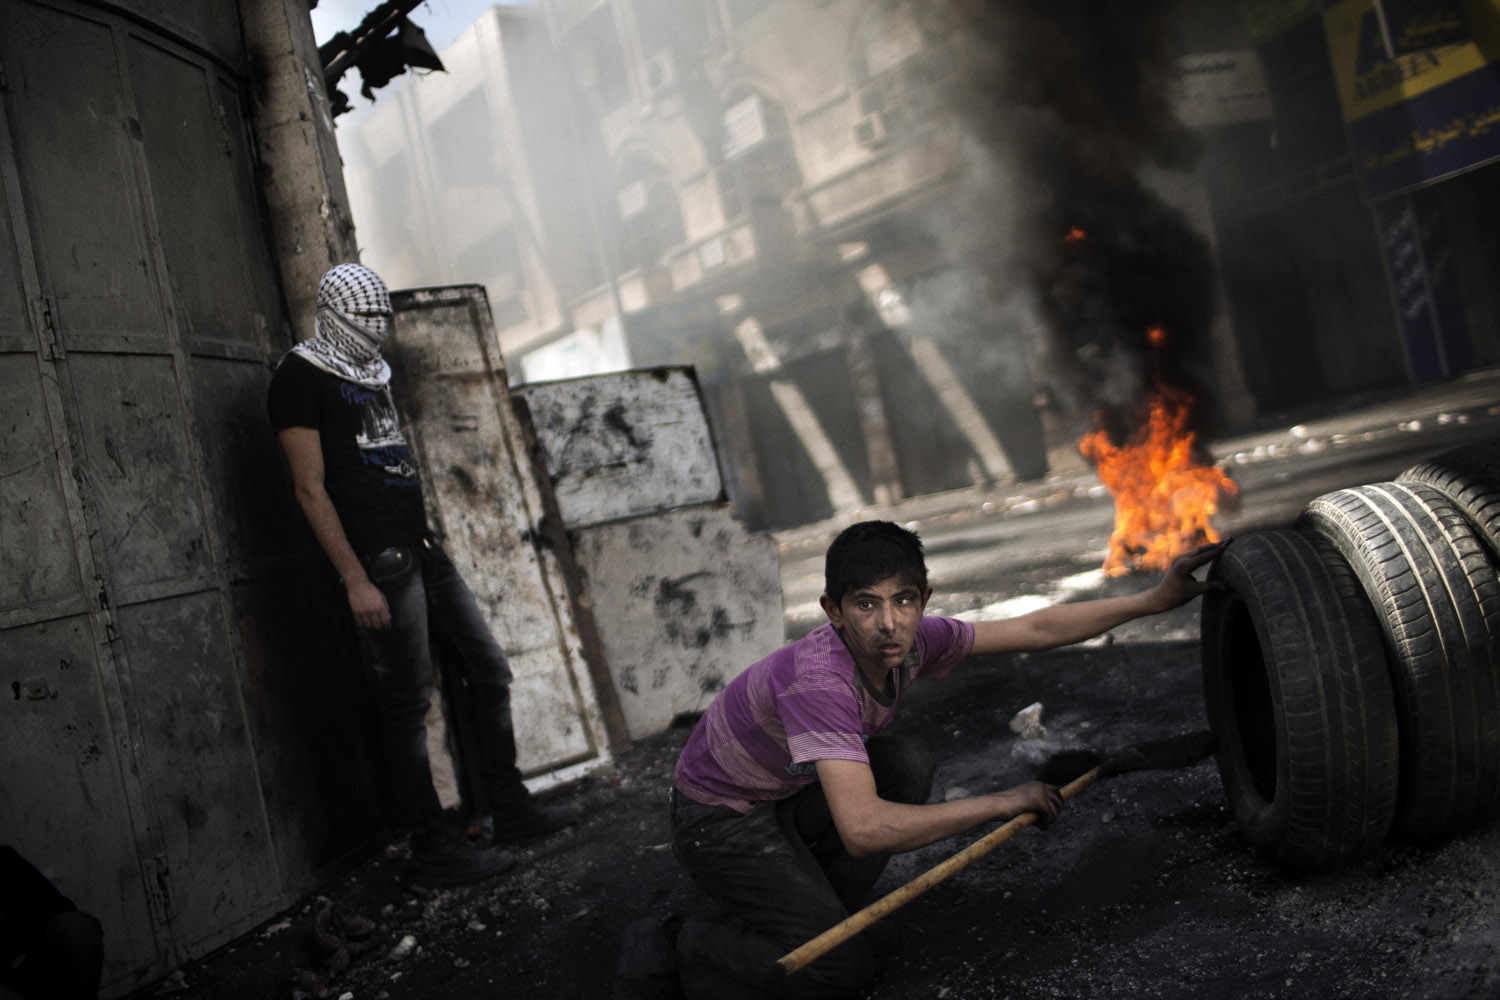 April 3, 2013. A Palestinian demonstrator looks on during clashes with the Israeli army in the West Bank city of Hebron.